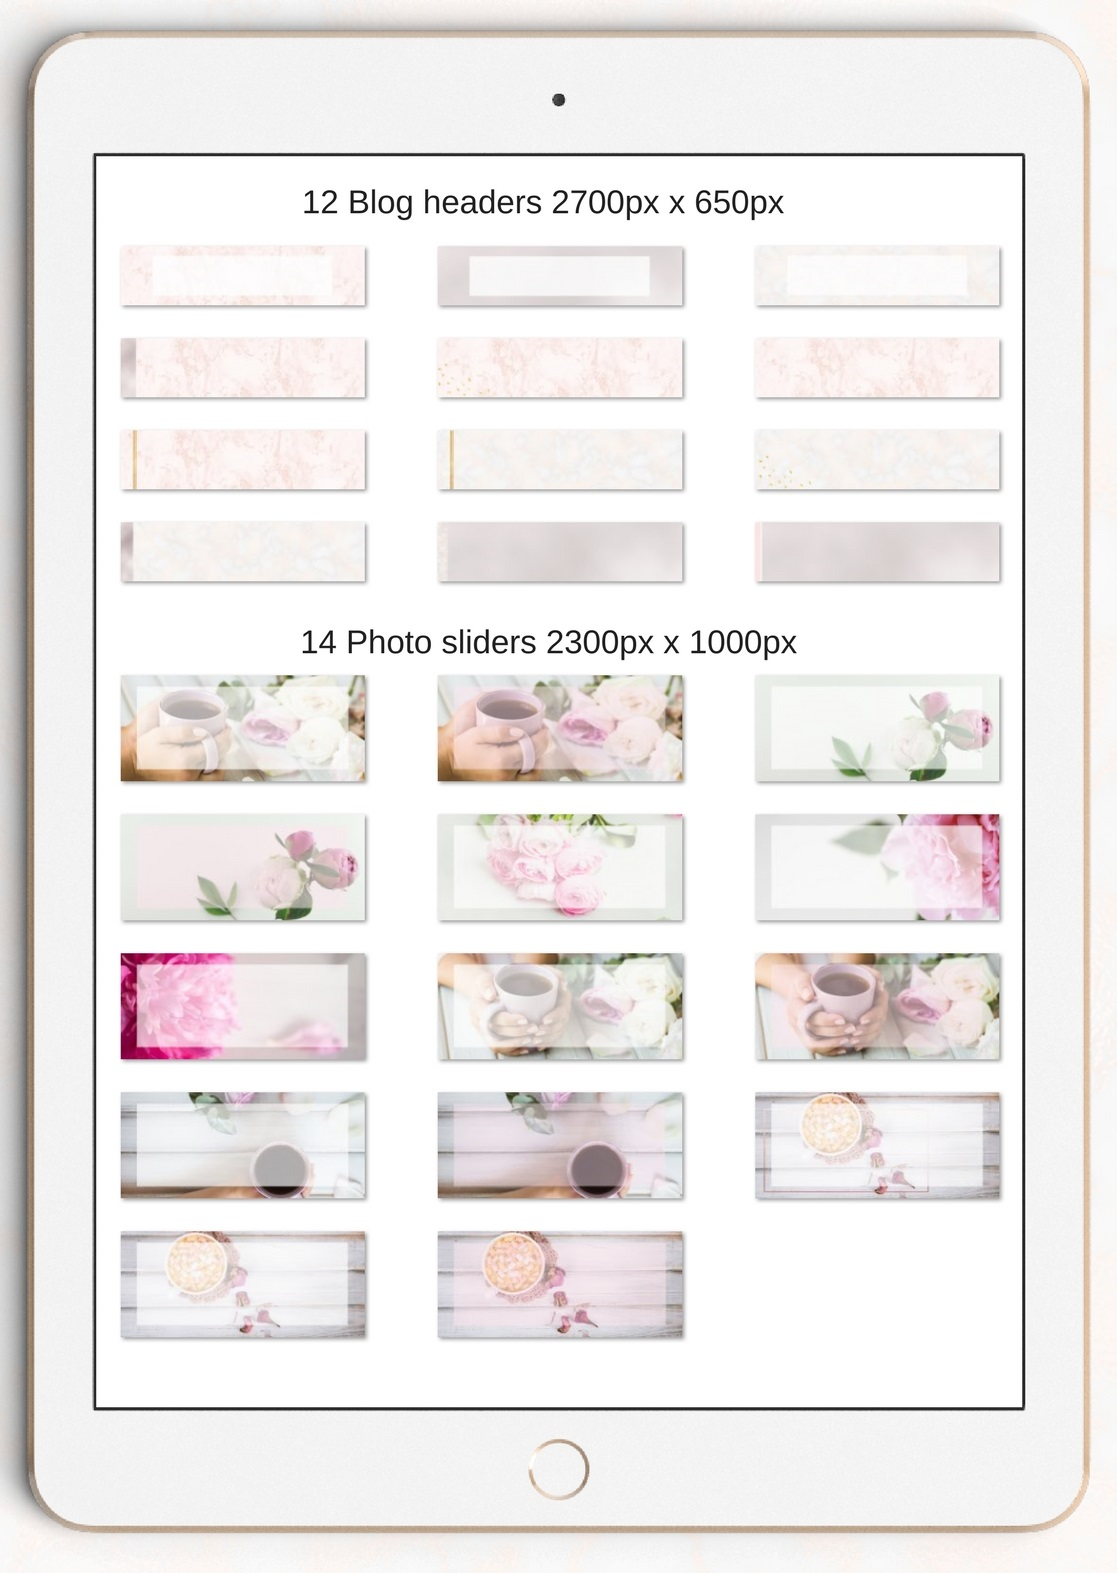 The Creative Blog Kit Graphic Web Elements By Creative Stash - Image 3